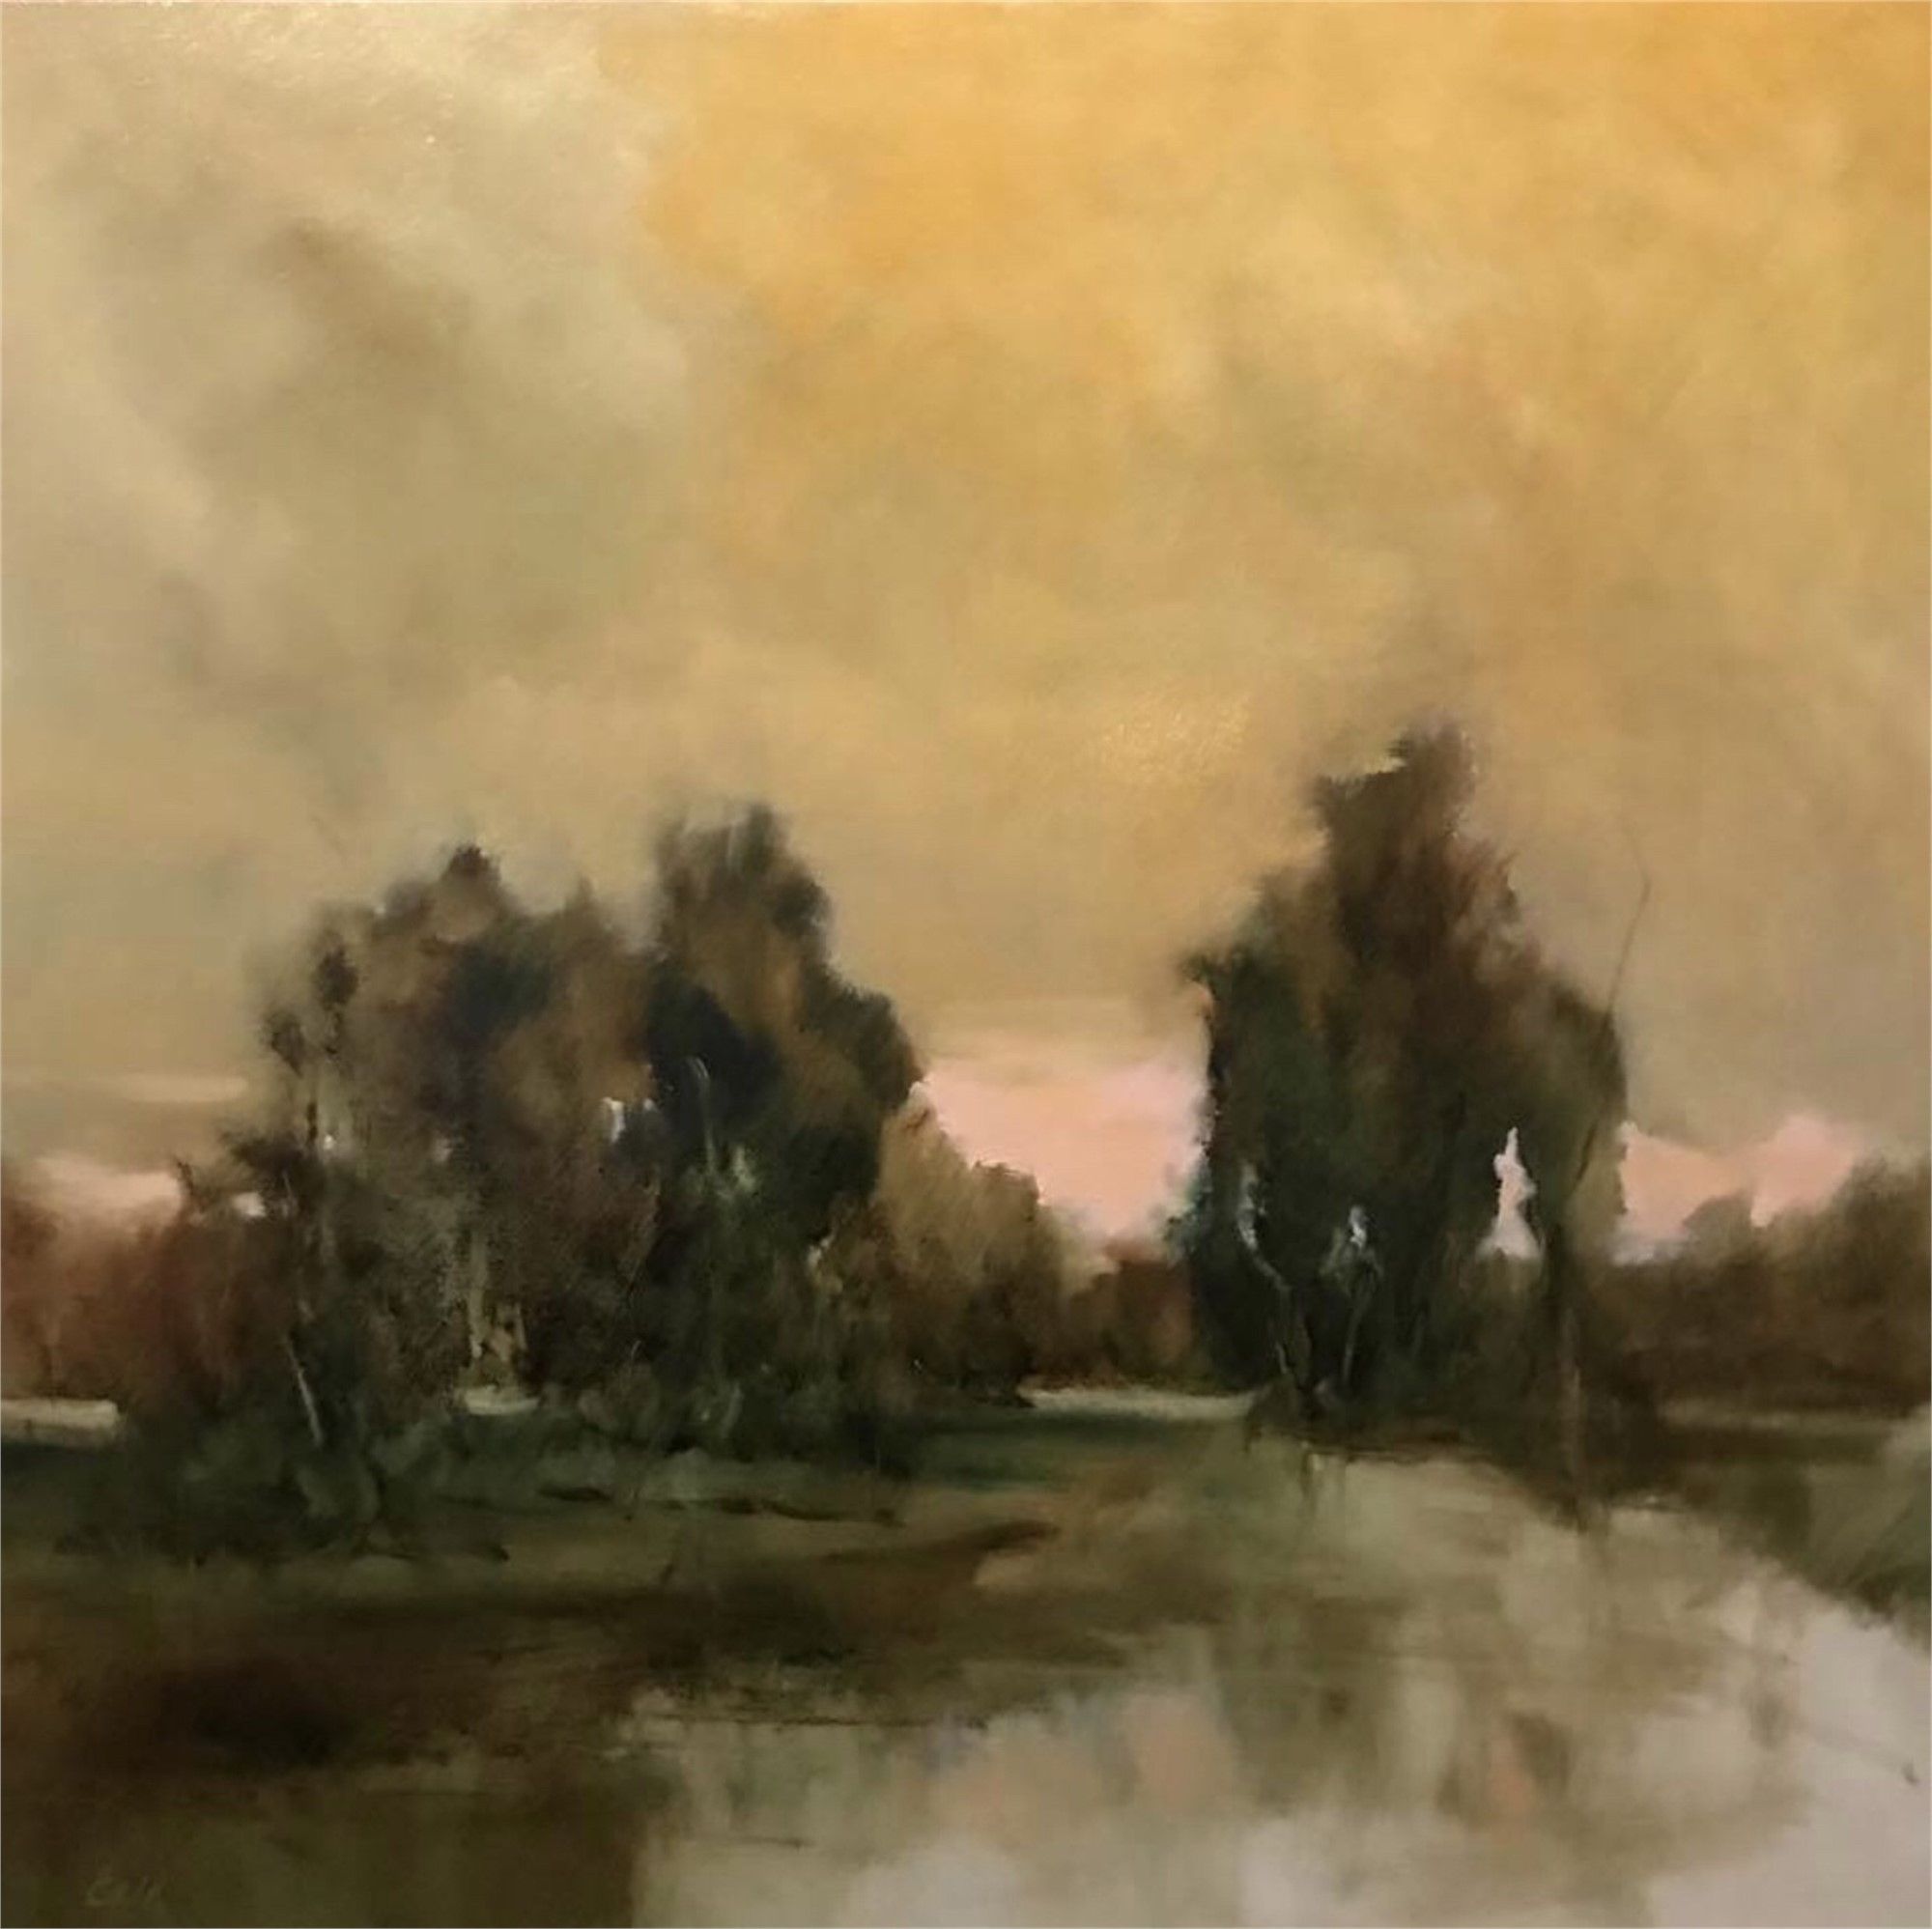 Placid Waters by James Calk